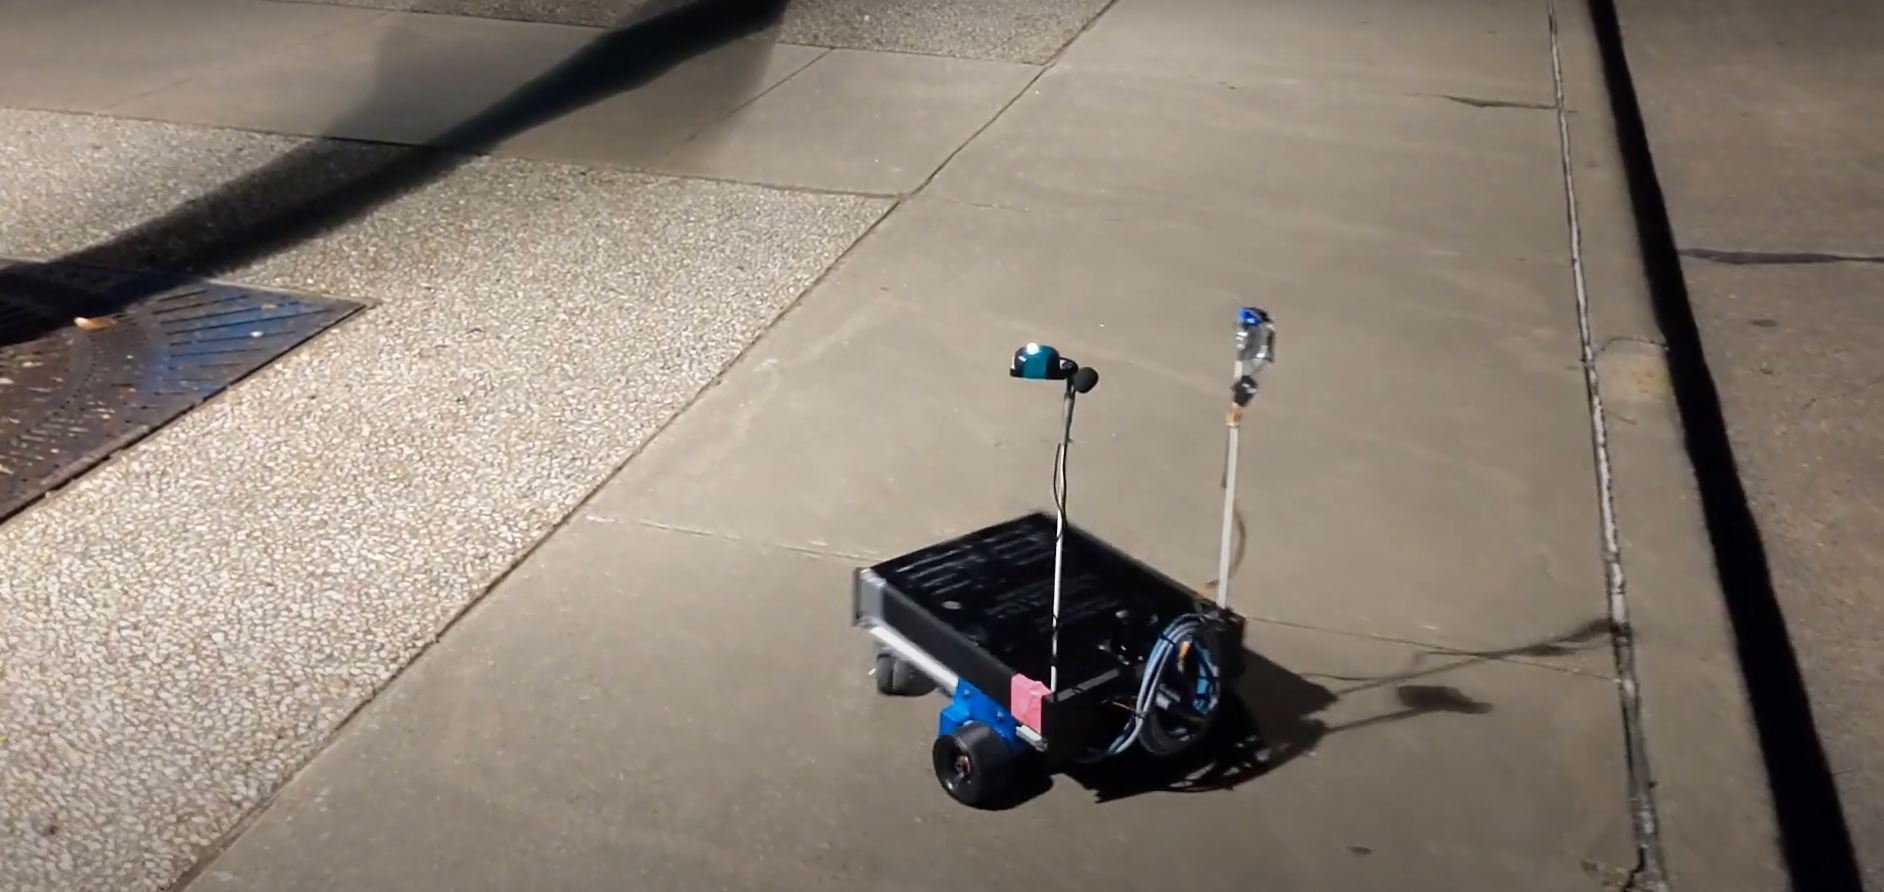 TiM$10K Challenge, Introducing Your Campus Tour Guide: VALE the Robot